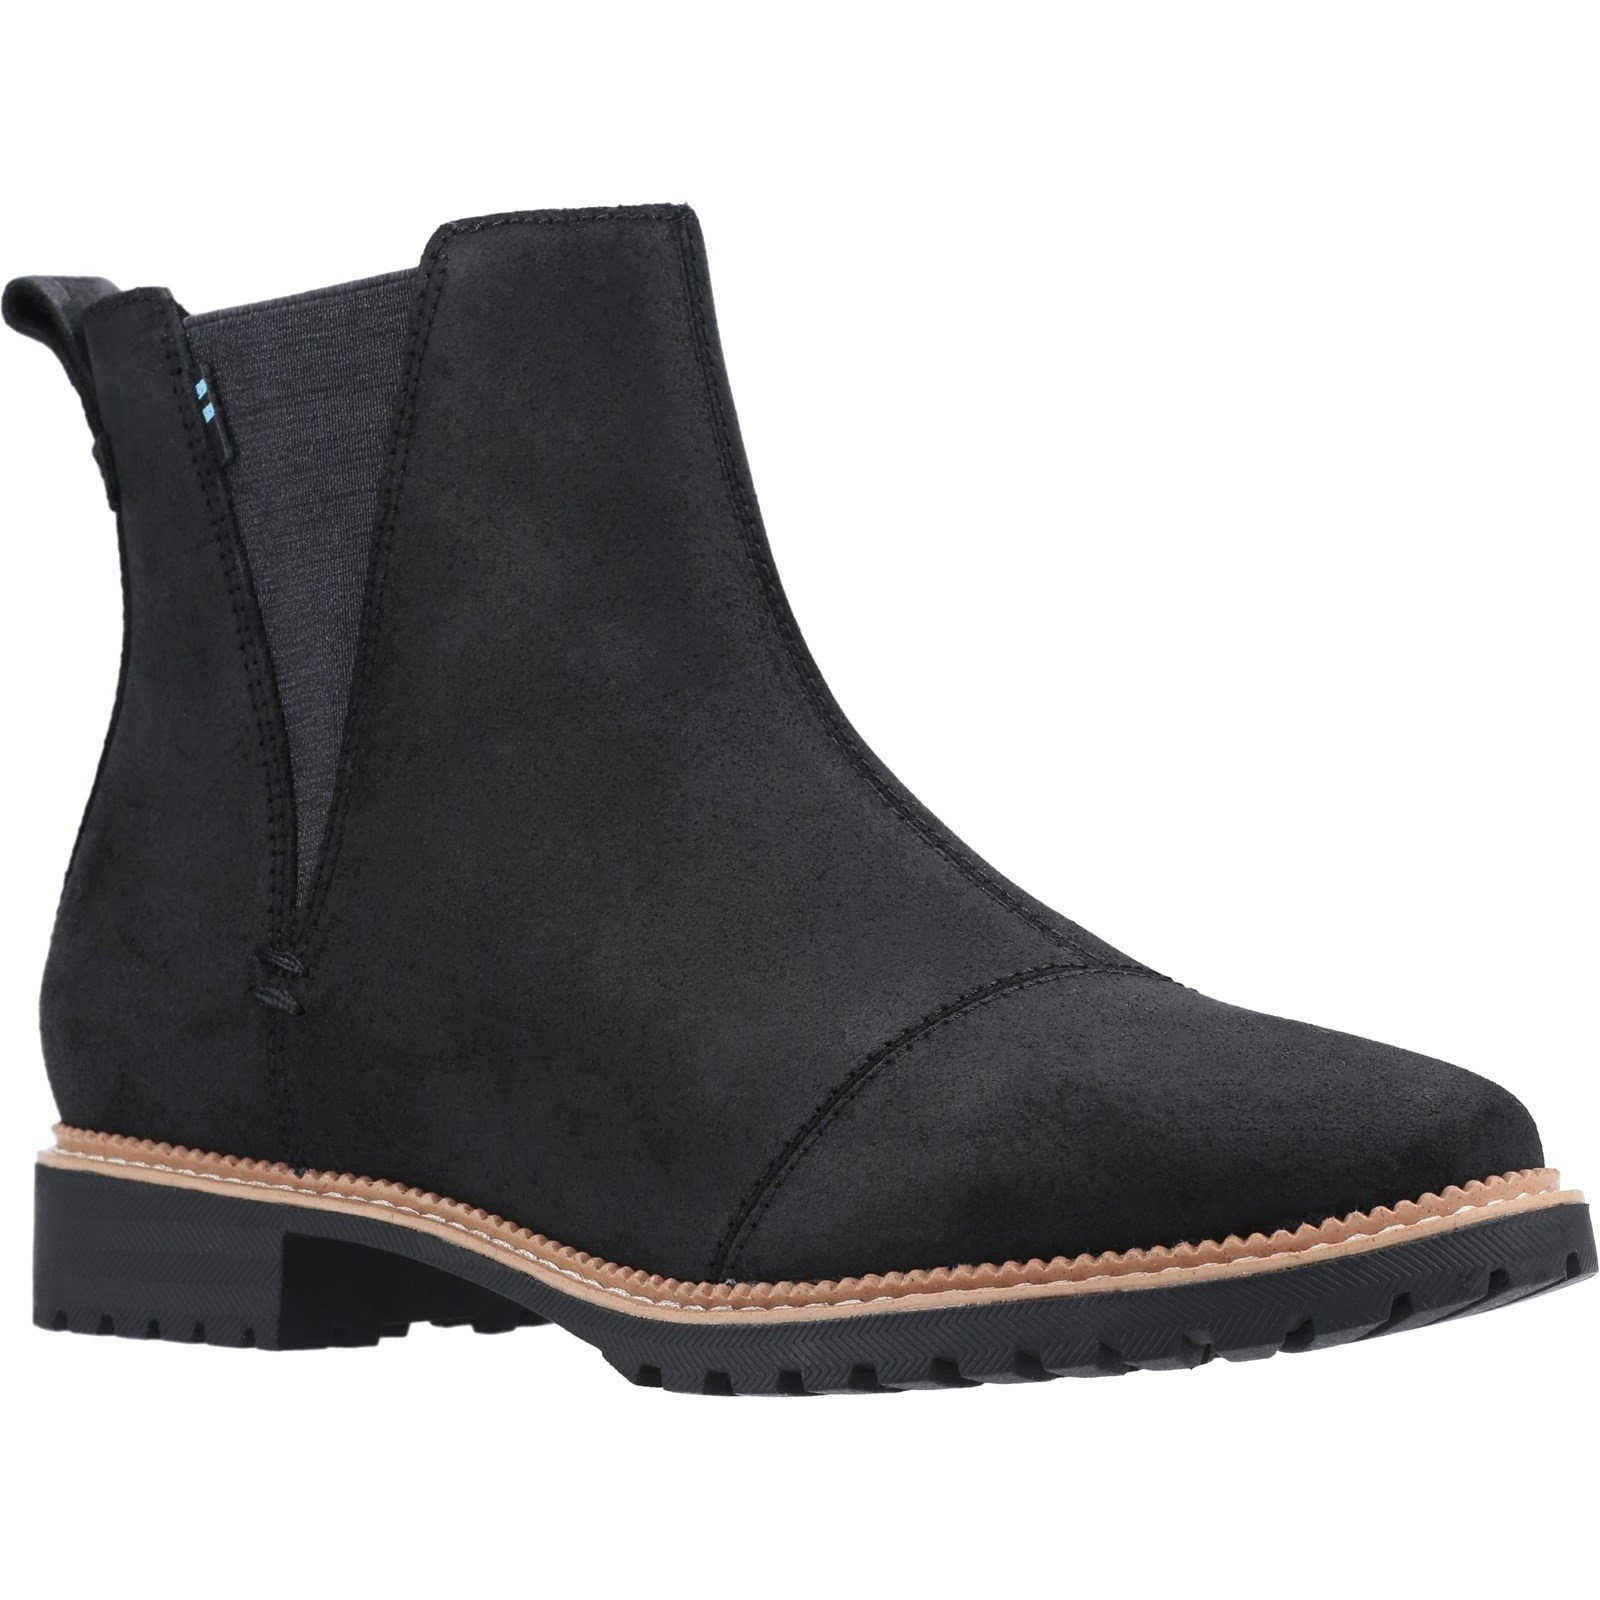 TOMS Women's Cleo Boot Multicolor 31596 - Water Resistant Black Leather 6